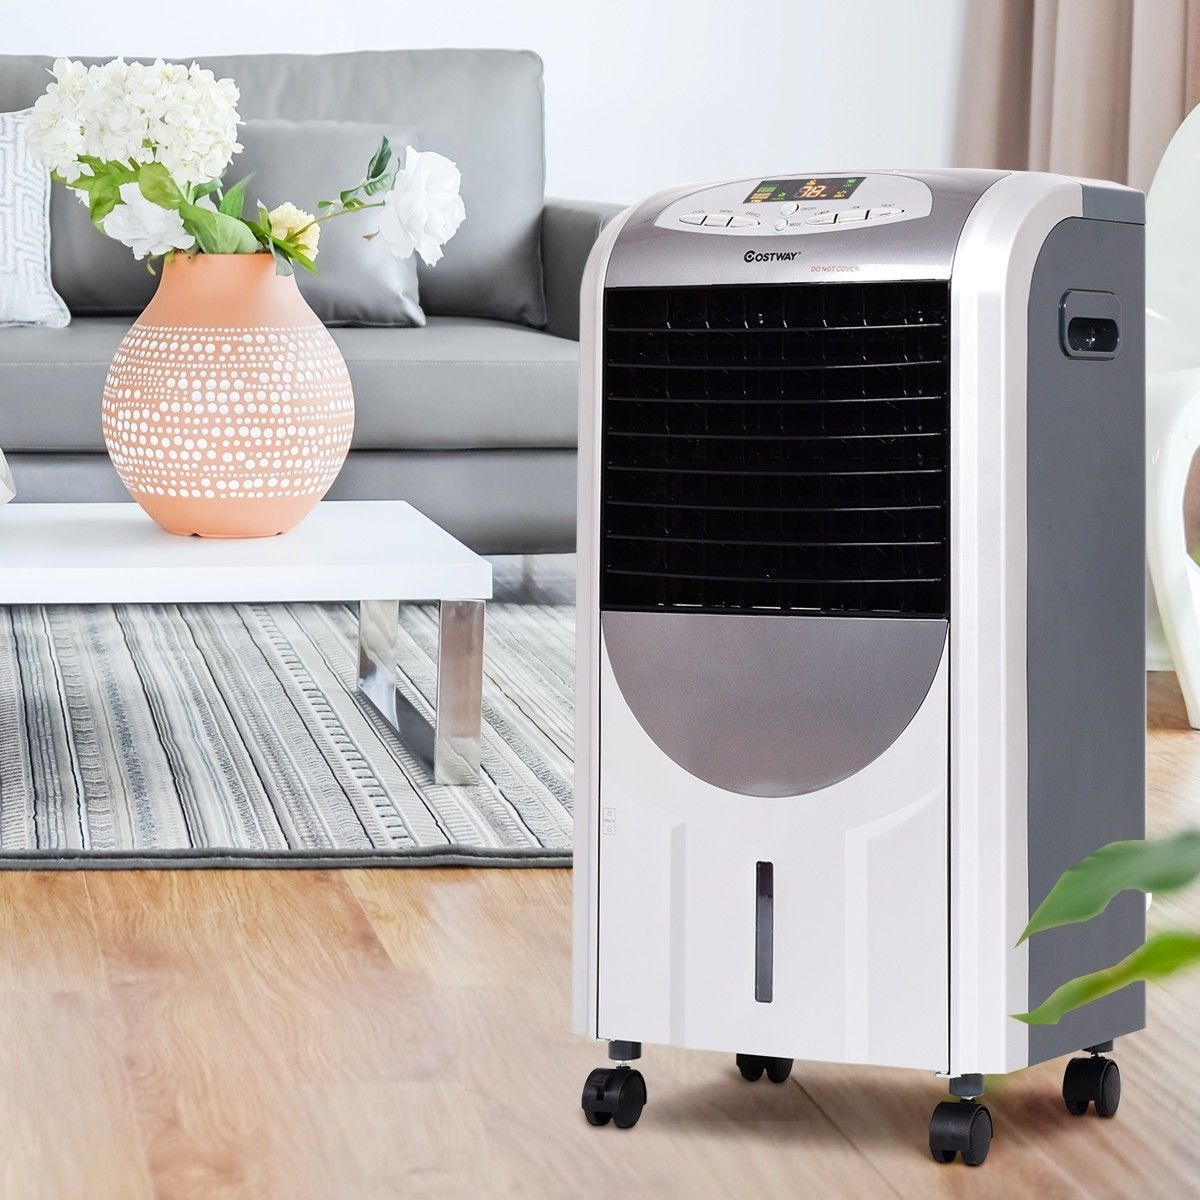 Portable Air Cooler Fan And Heater Humidifier With Images Air Cooler Fan Portable Air Cooler Air Cooler